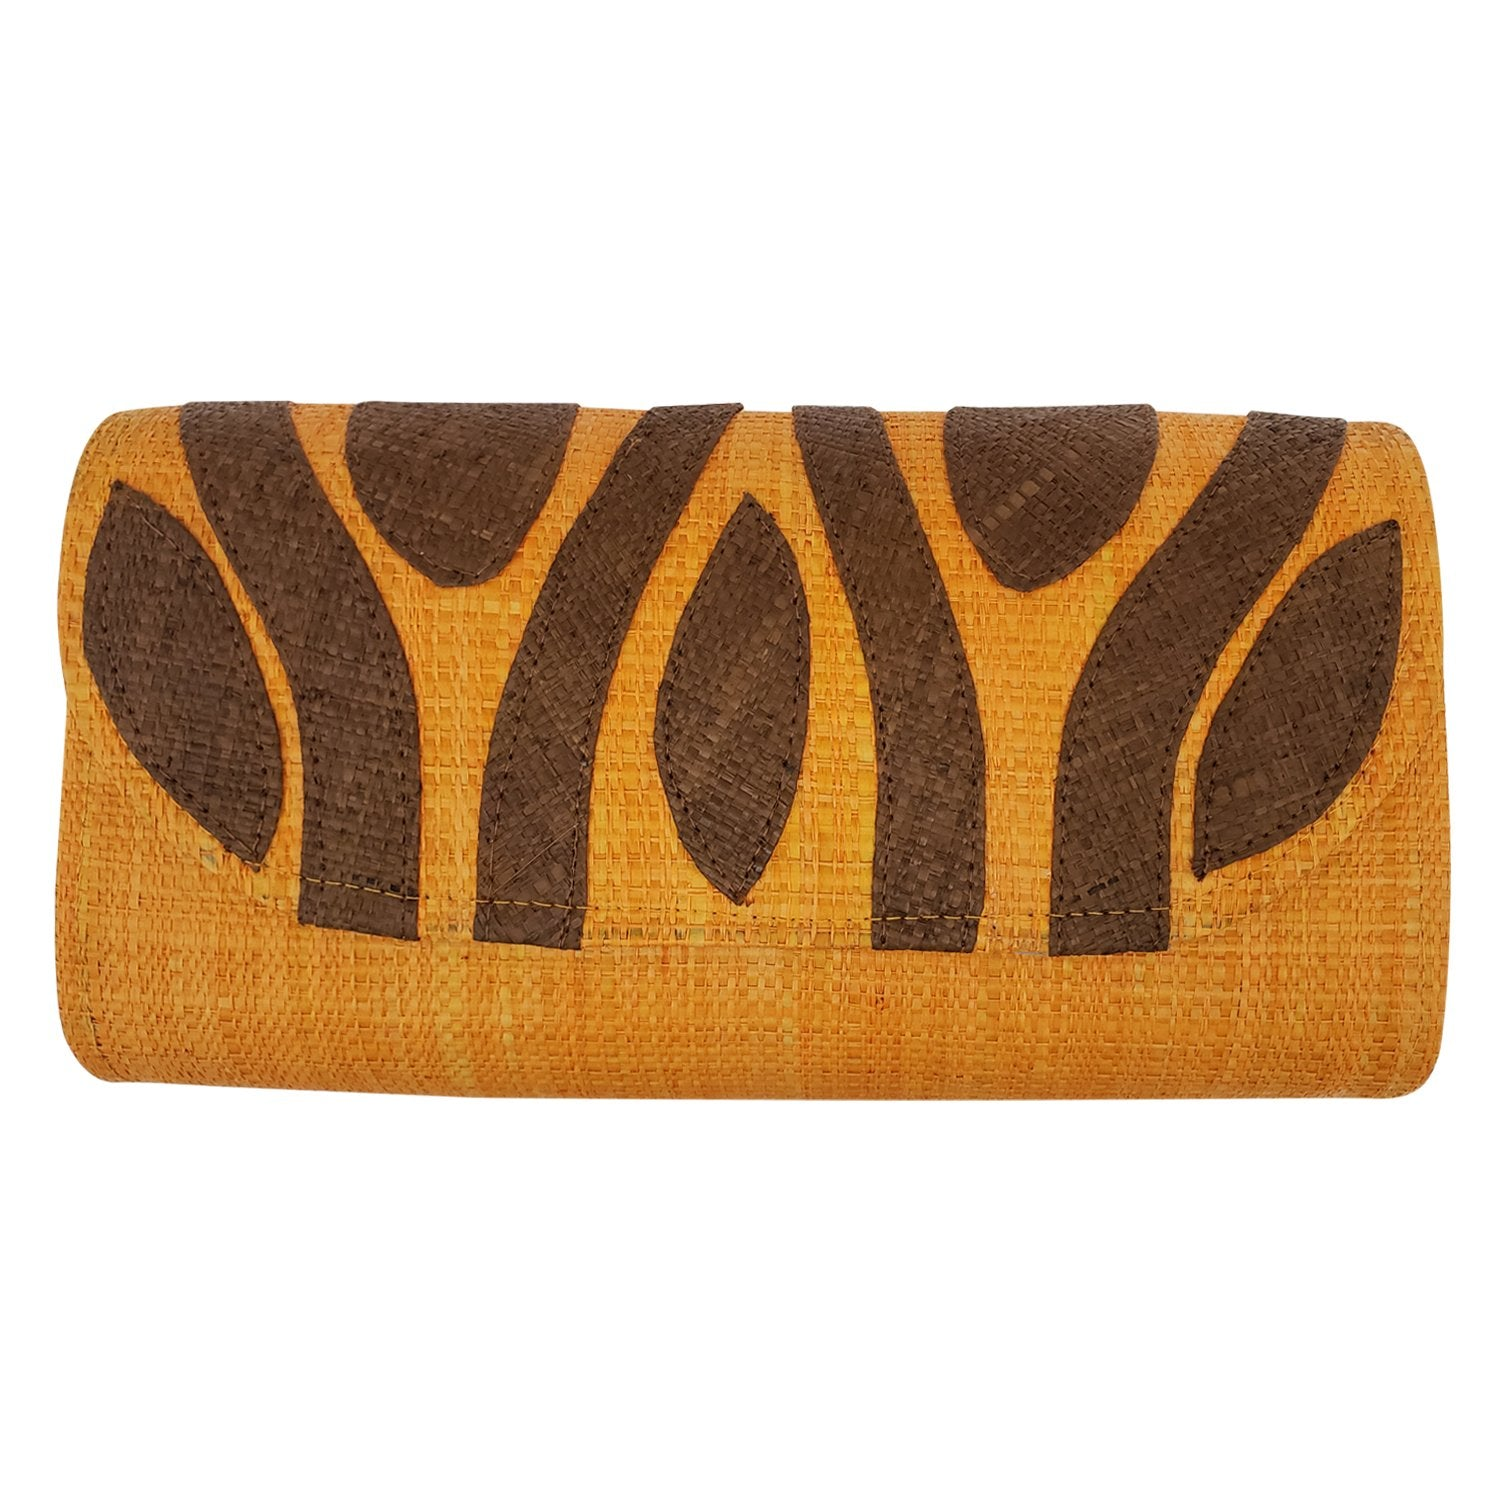 Authentic Handwoven Orange Madagascar Raffia Clutch with Brown Accents